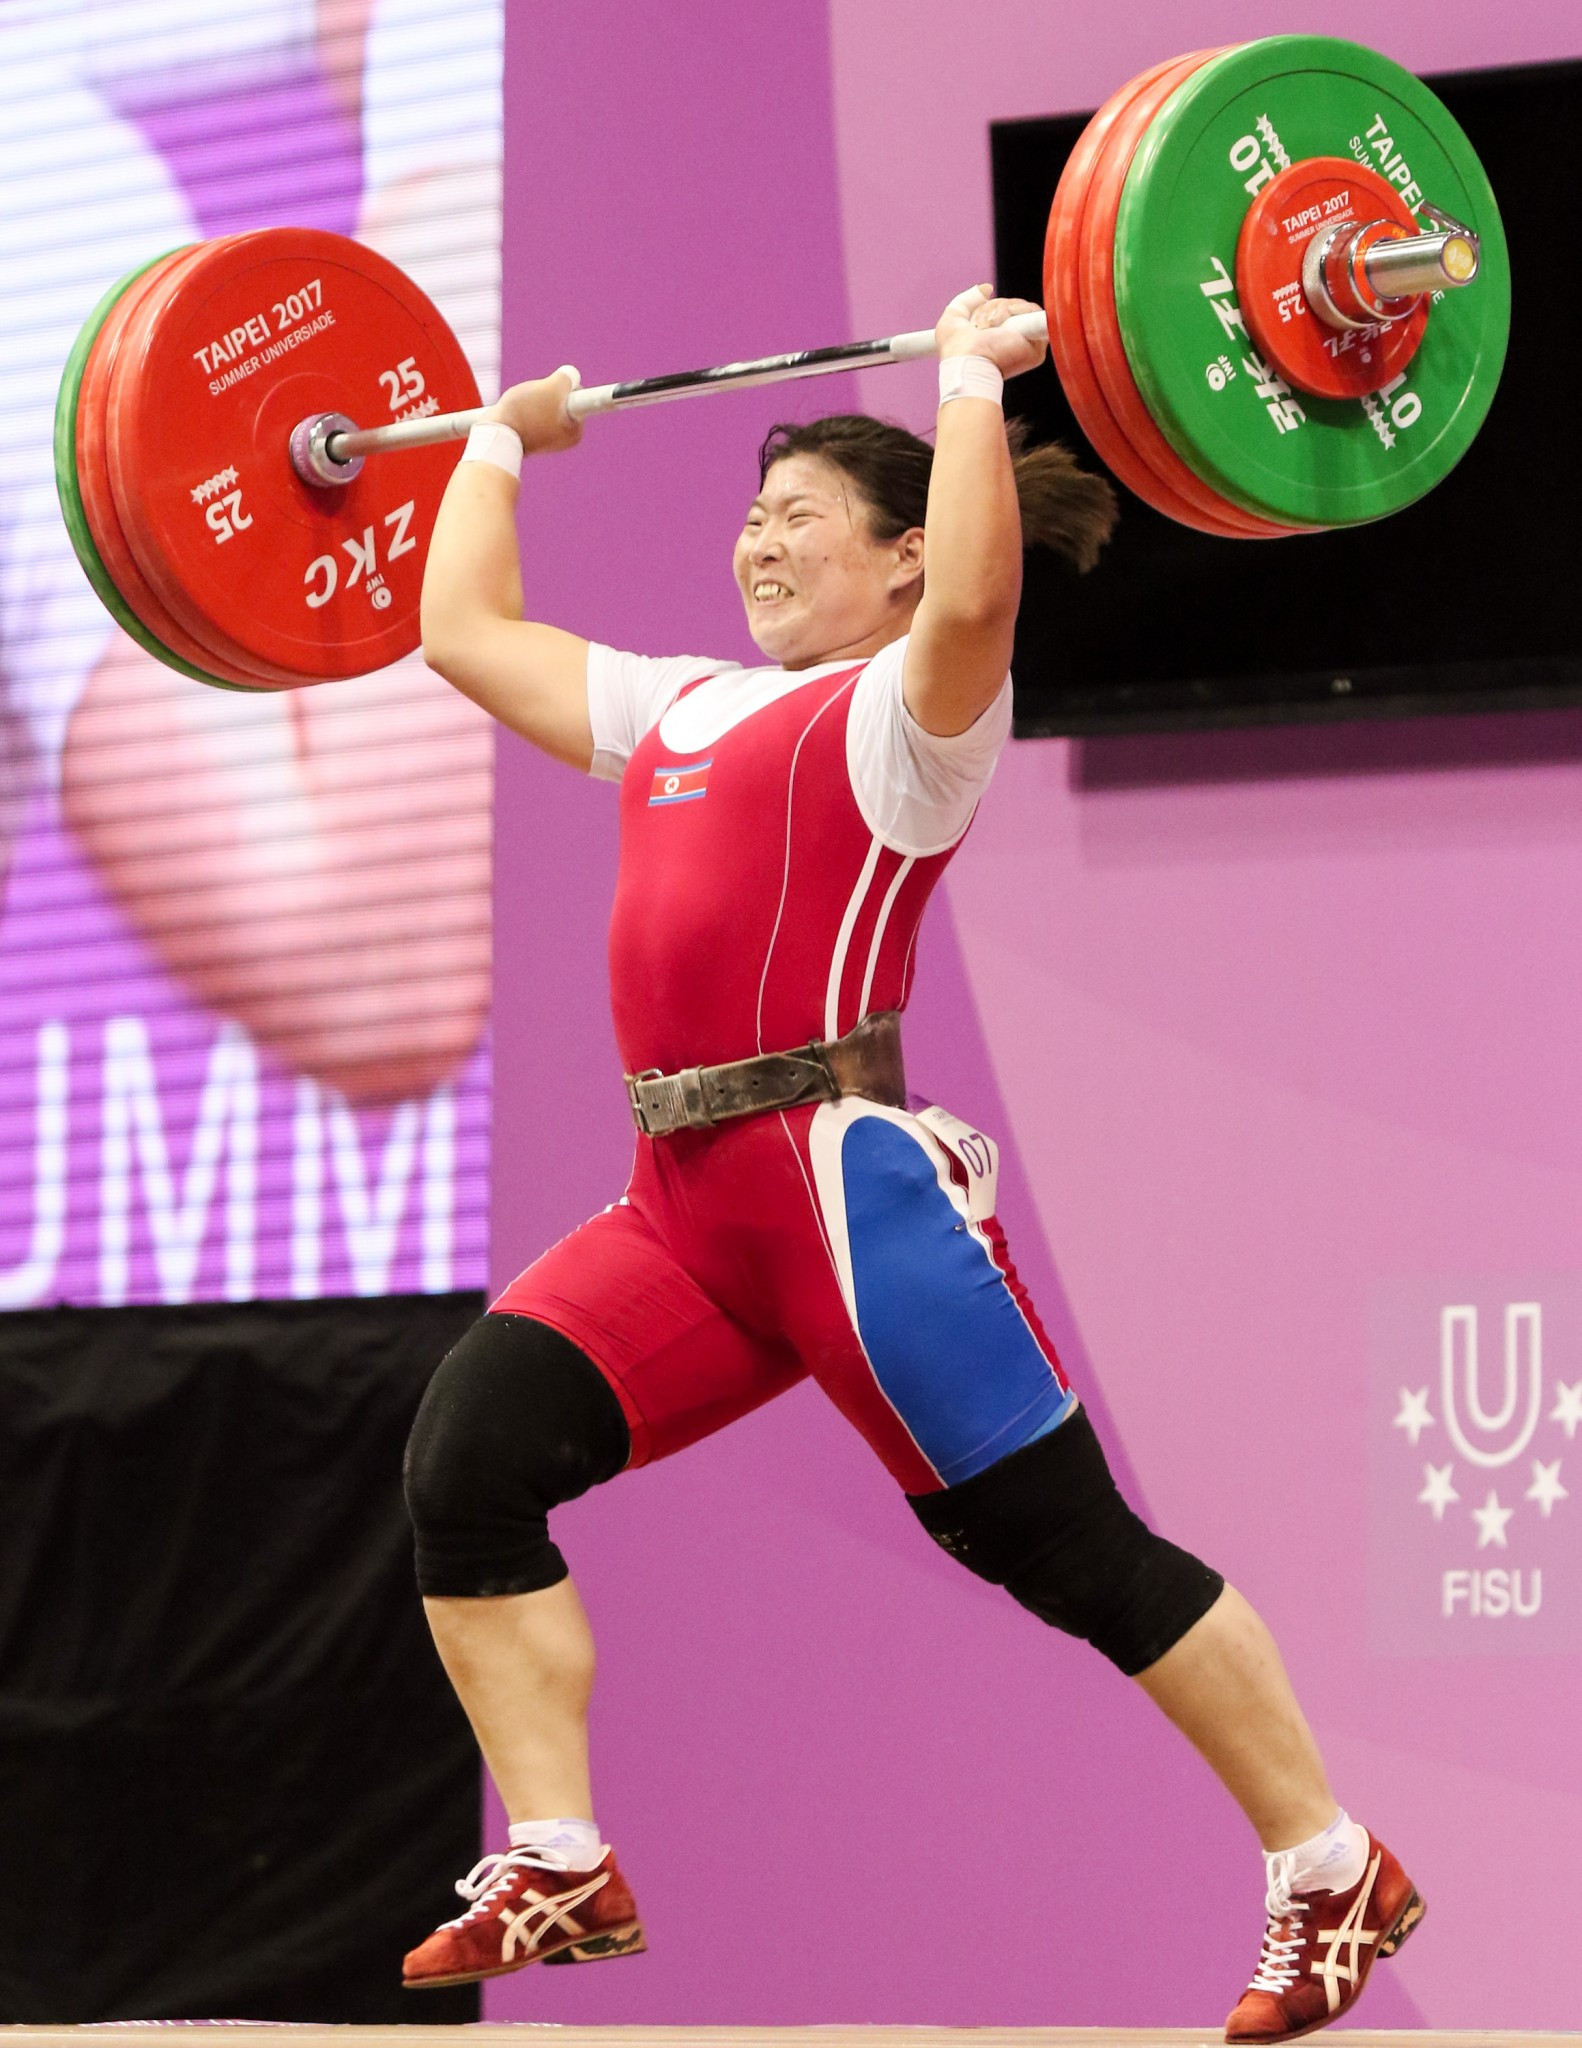 Rim Jong Sim claimed yet another weightlifting gold medal for North Korea today ©Taipei 2017